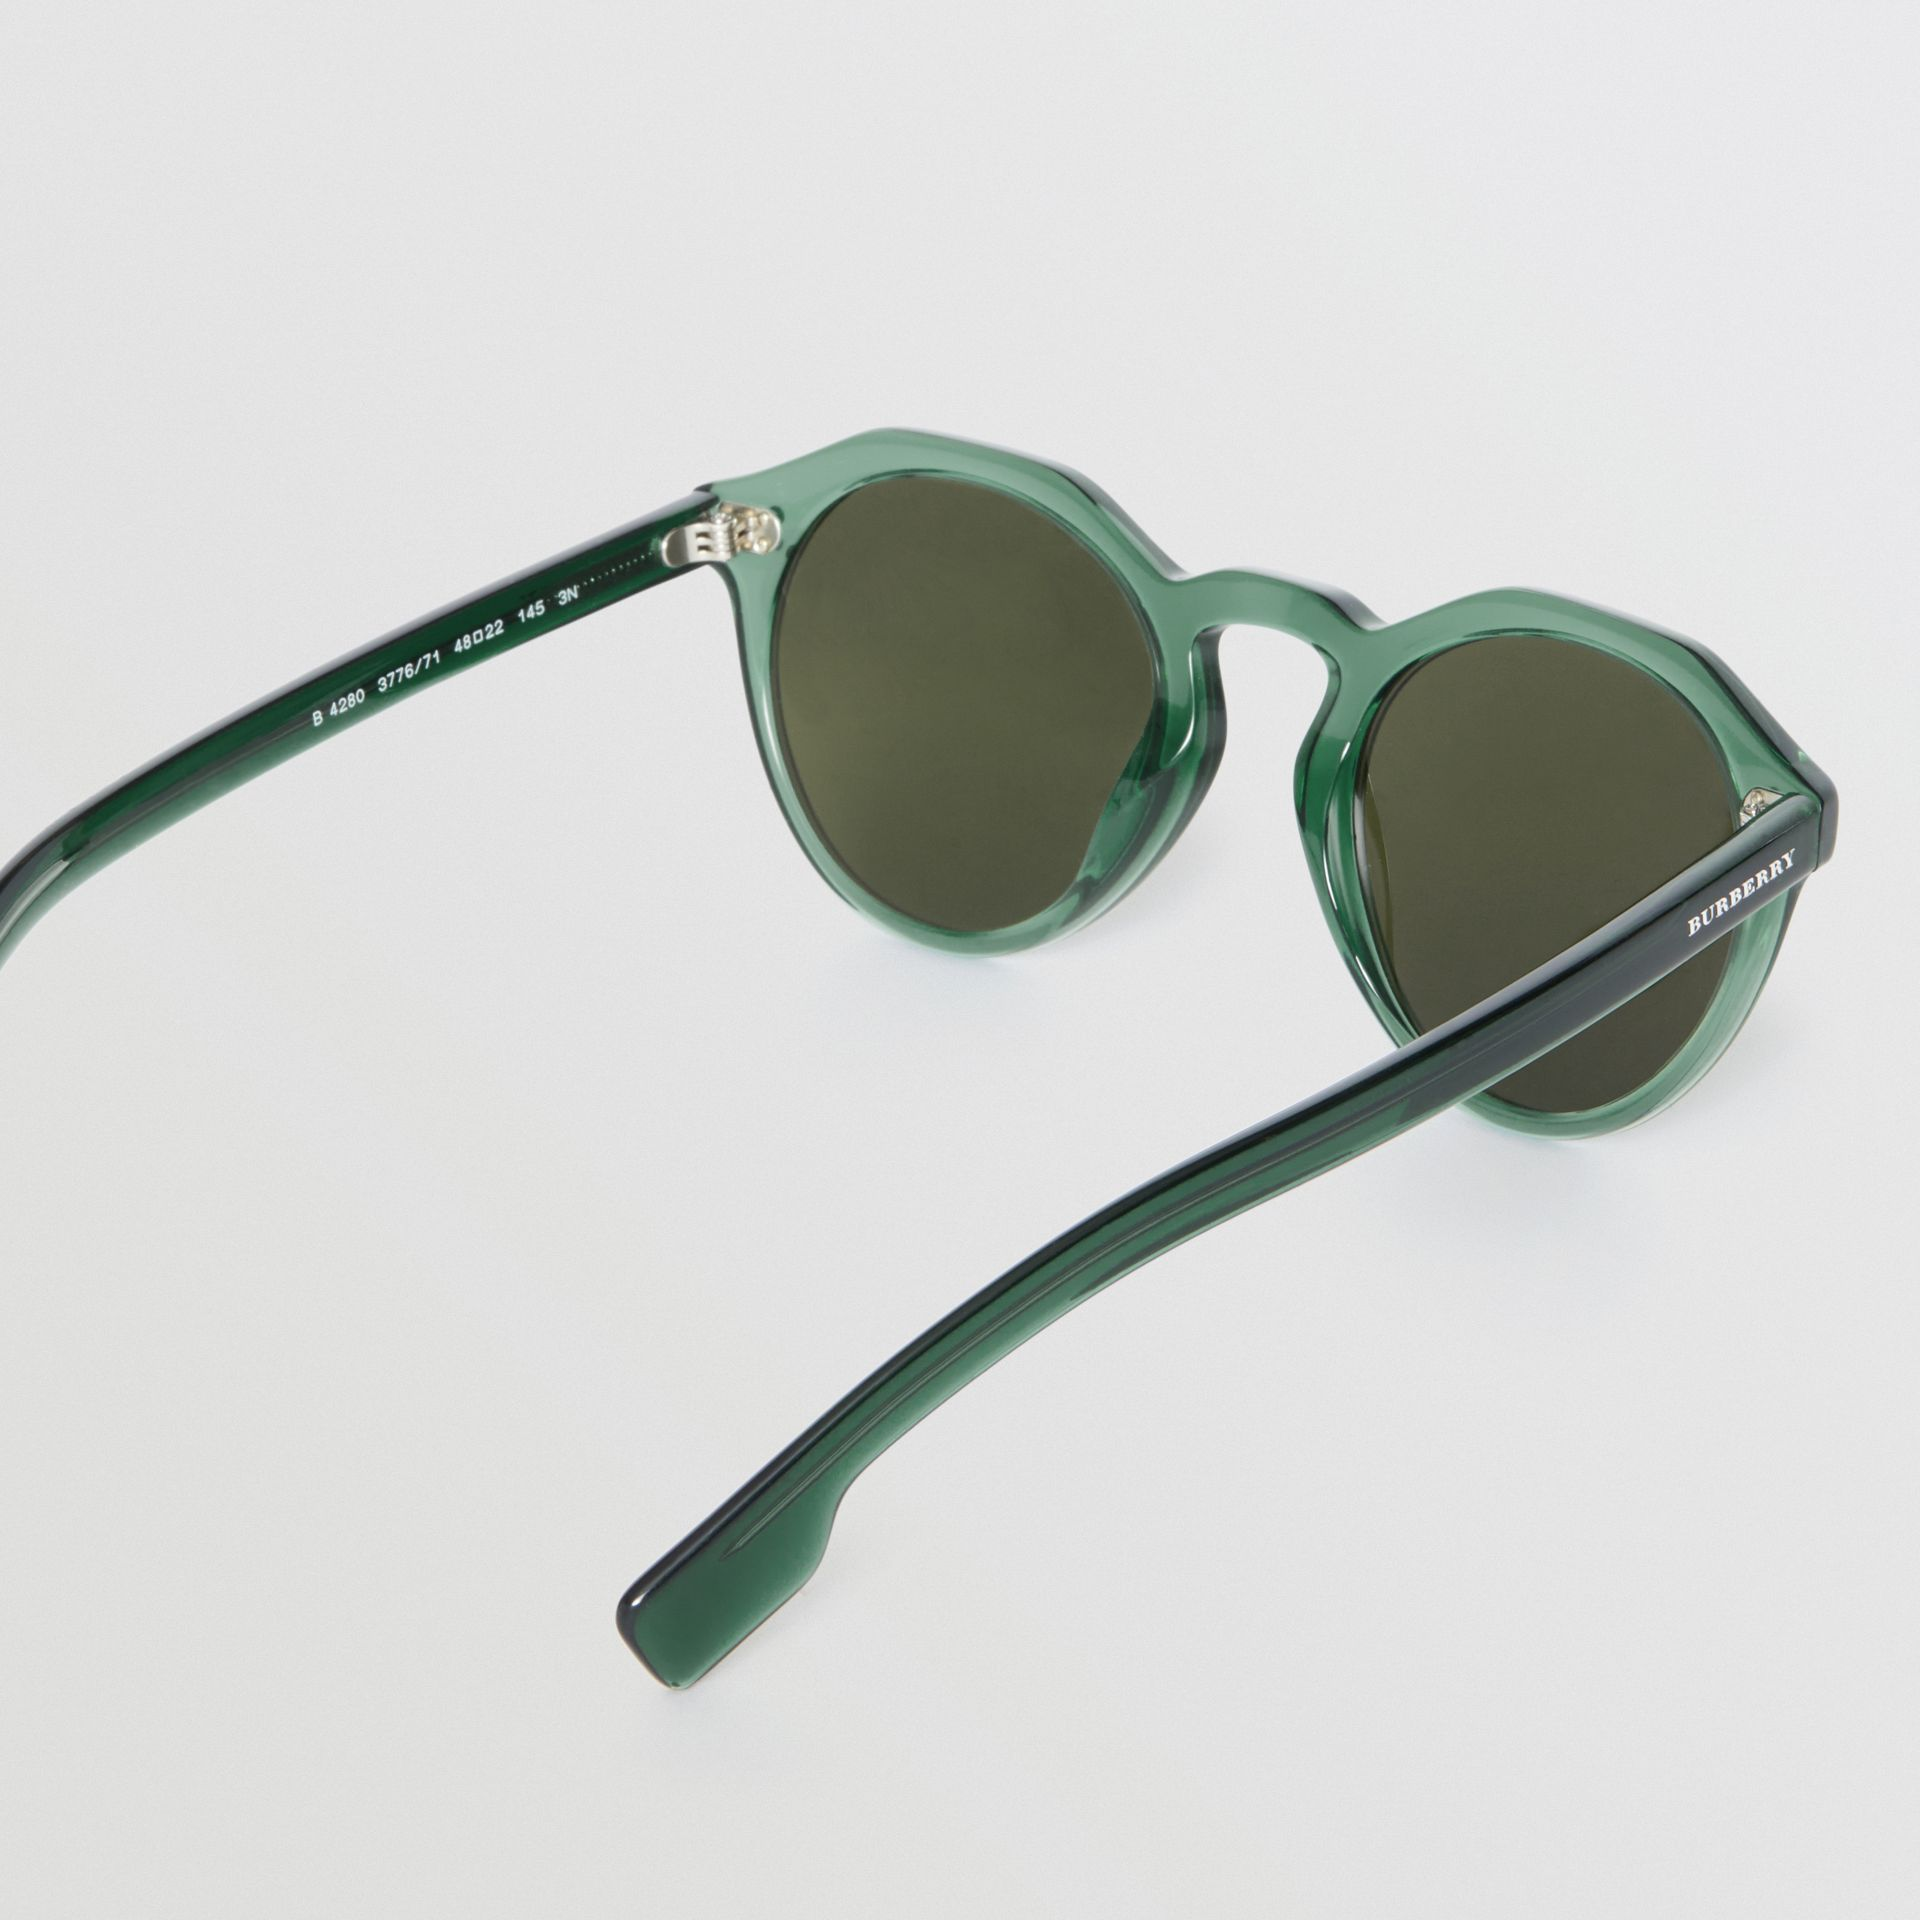 Keyhole Round Frame Sunglasses in Green - Men | Burberry Hong Kong S.A.R - gallery image 4